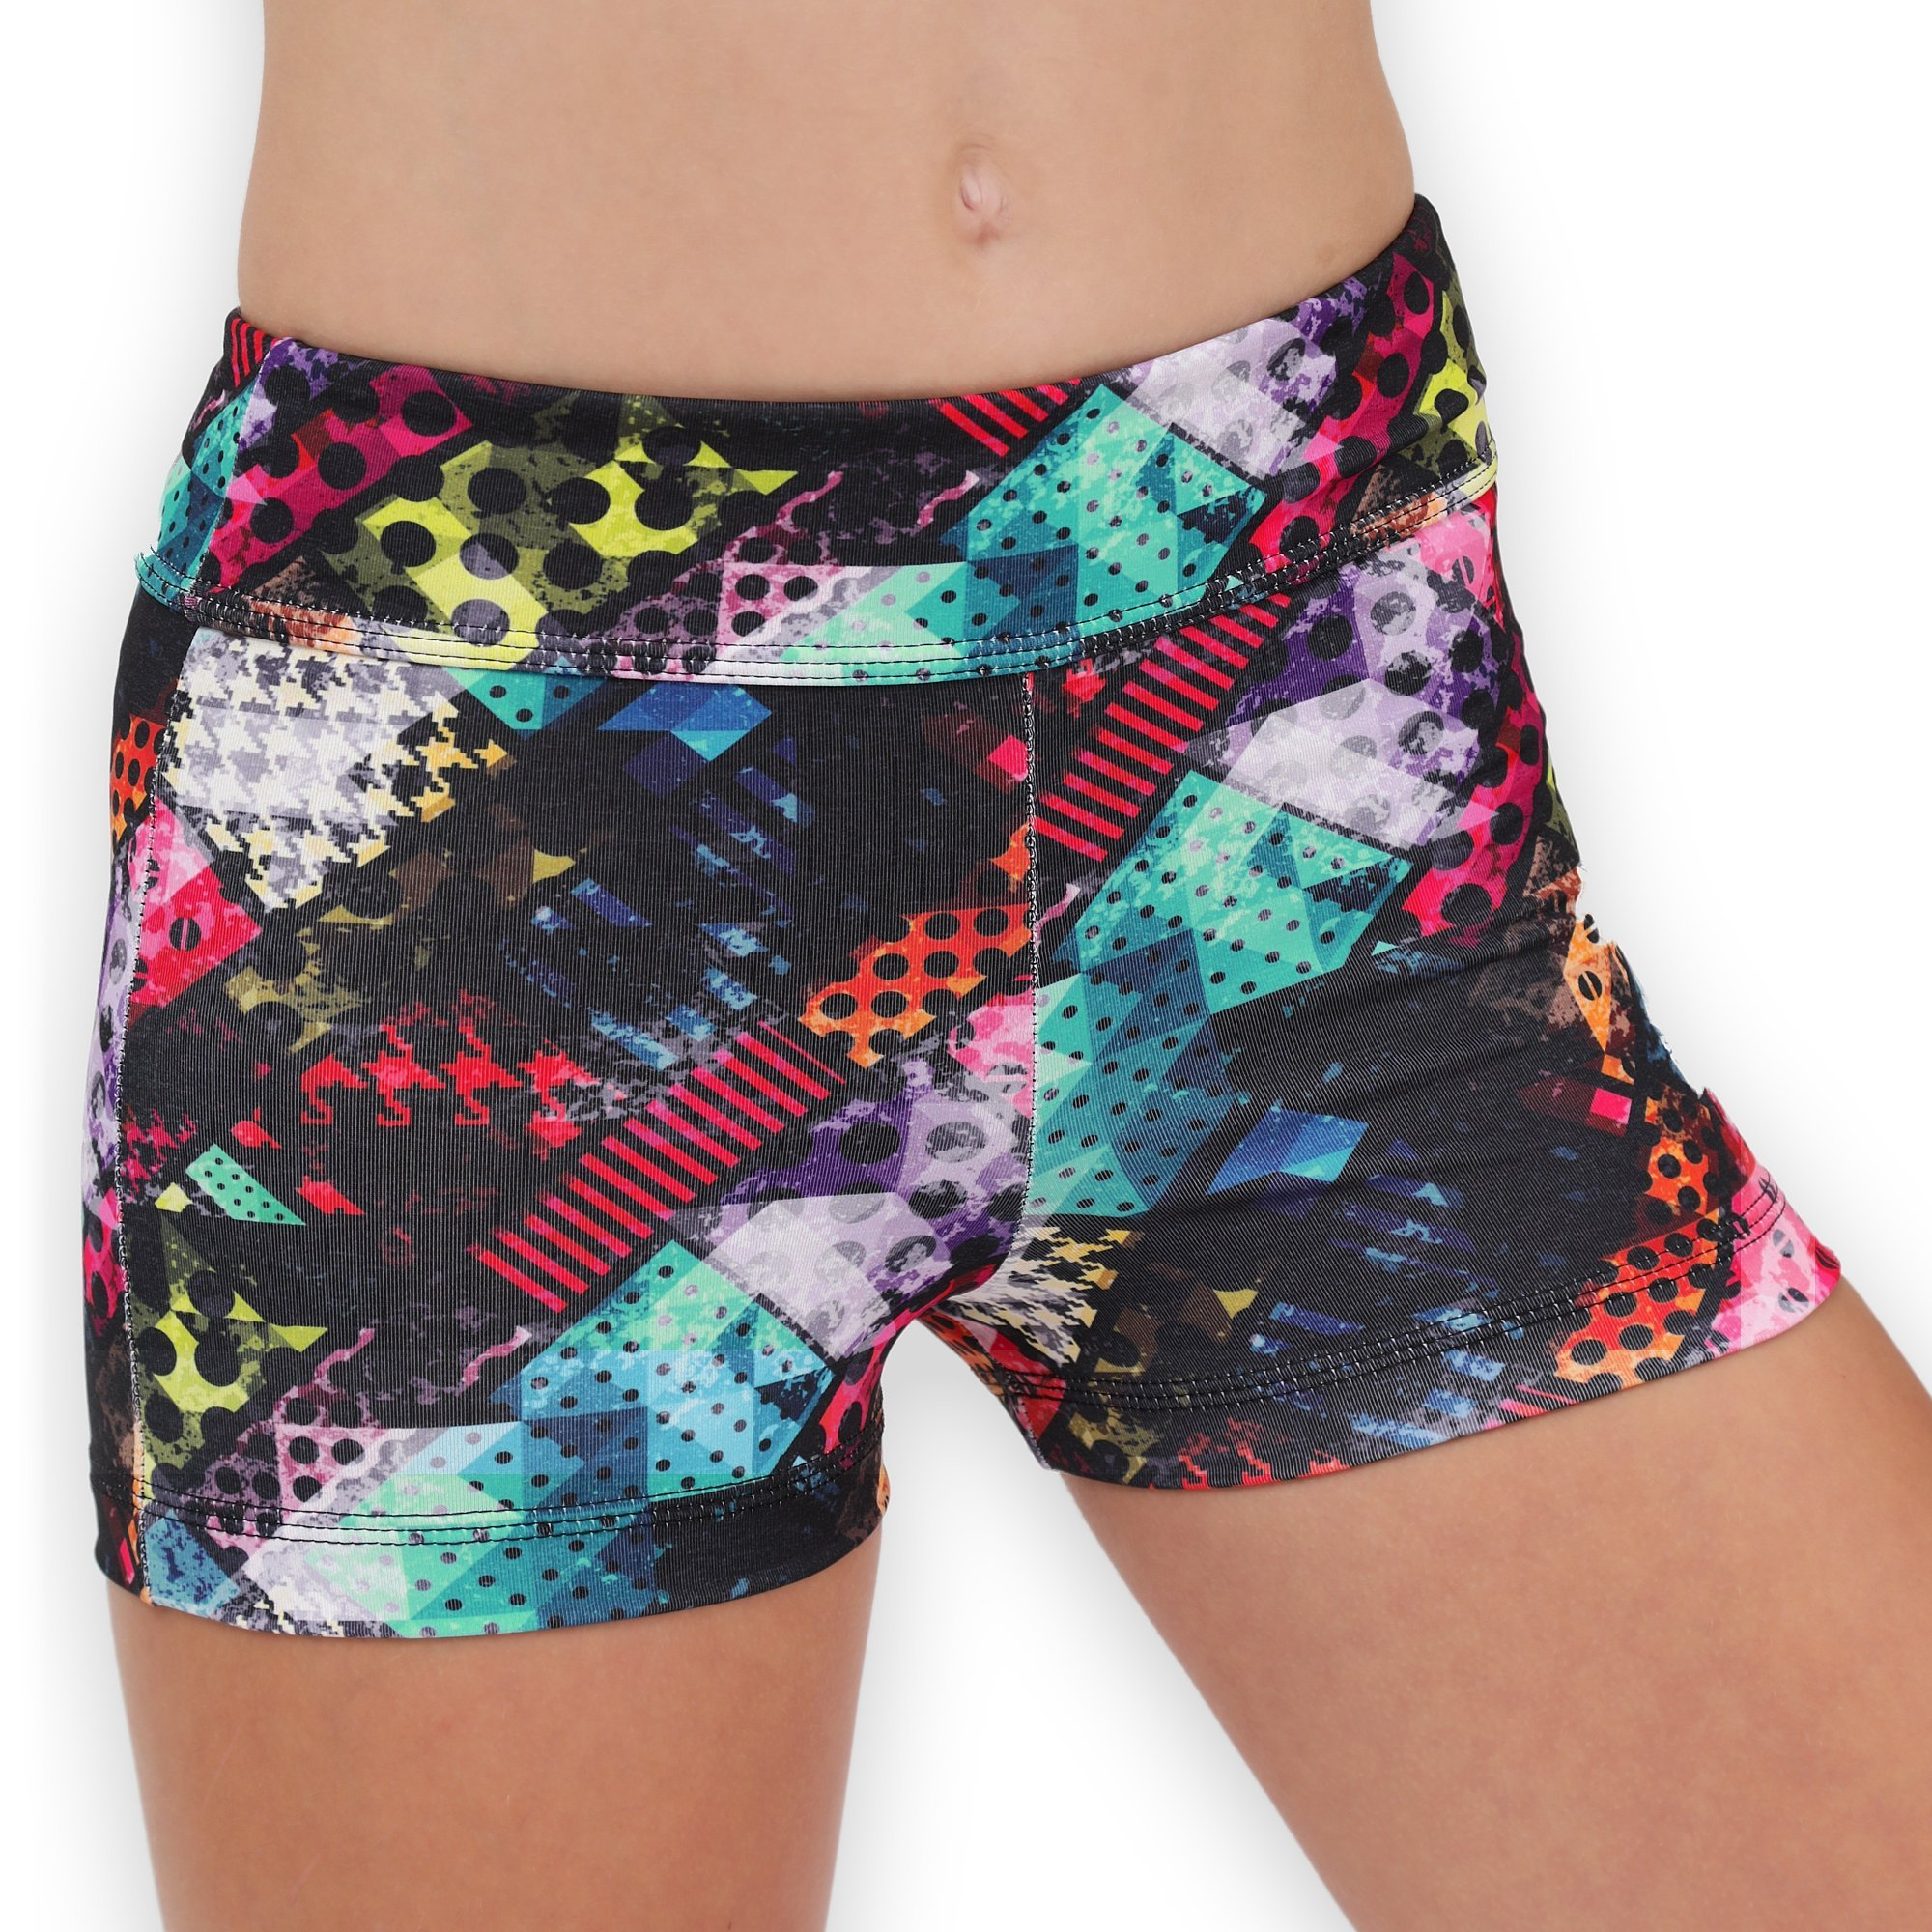 Leap Gear Gymnastics and Dance Shorts - Traffic/Easy Care - C Large by Leap Gear